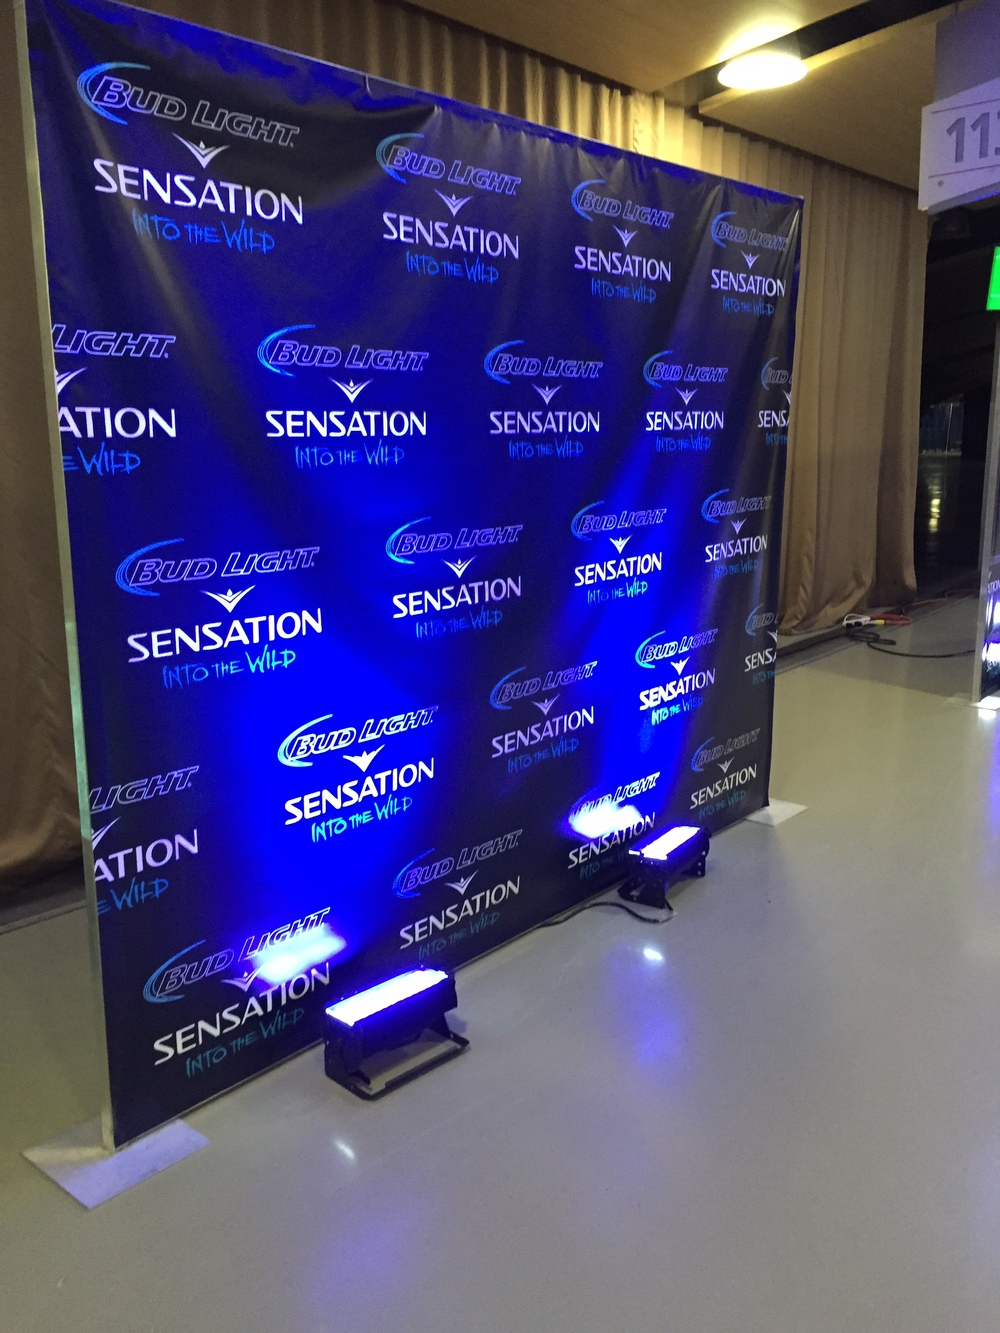 10'x8' backdrop - Bud Light Sensation: Into the Wild 2014